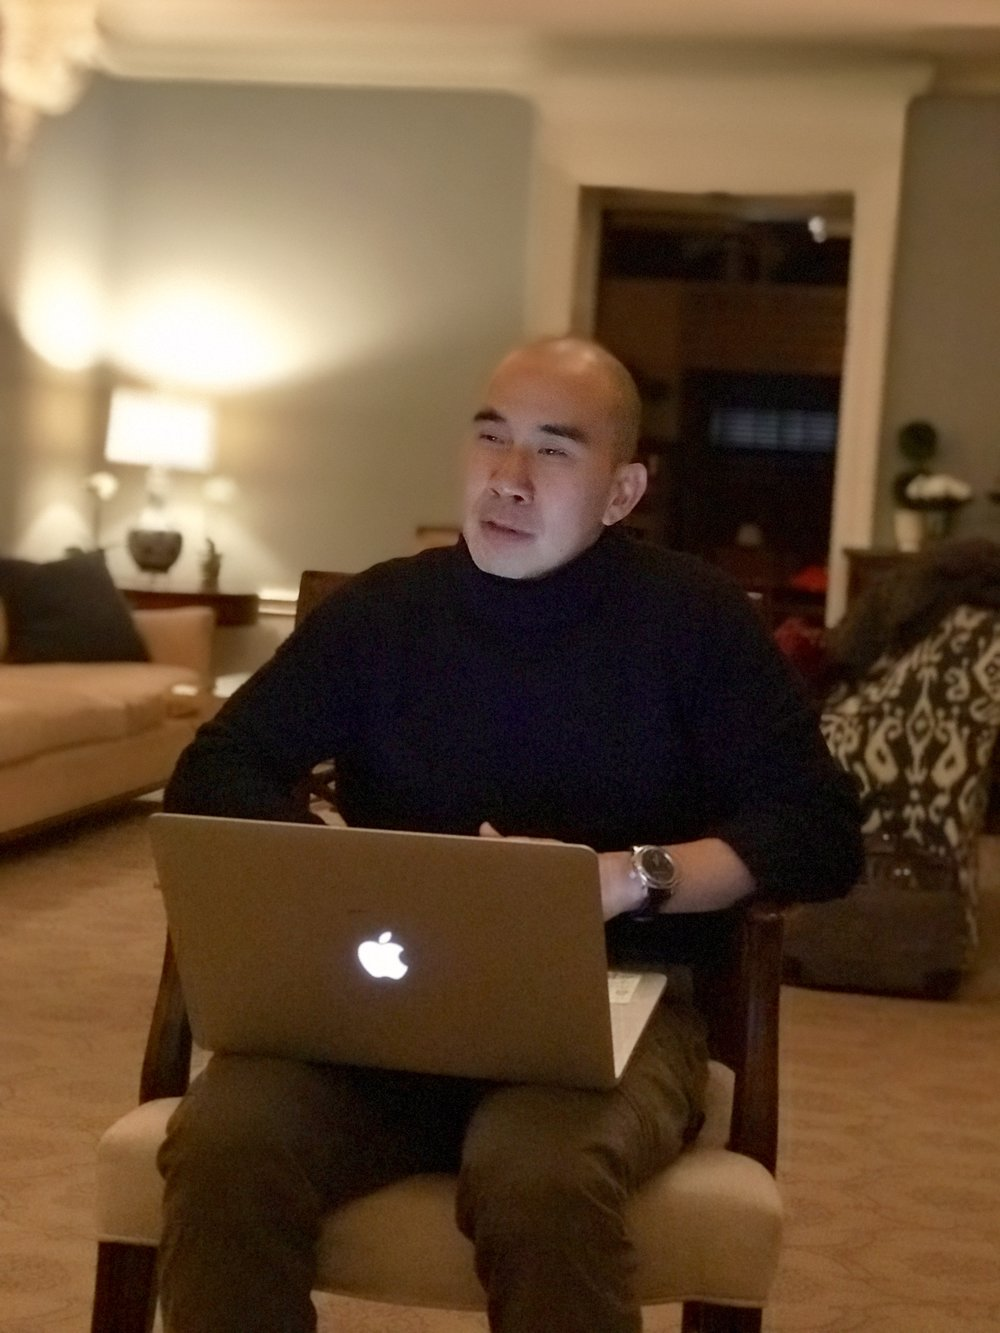 Web designer Li Wang teaches you how to get your personal brand website up in one day, no coding required.